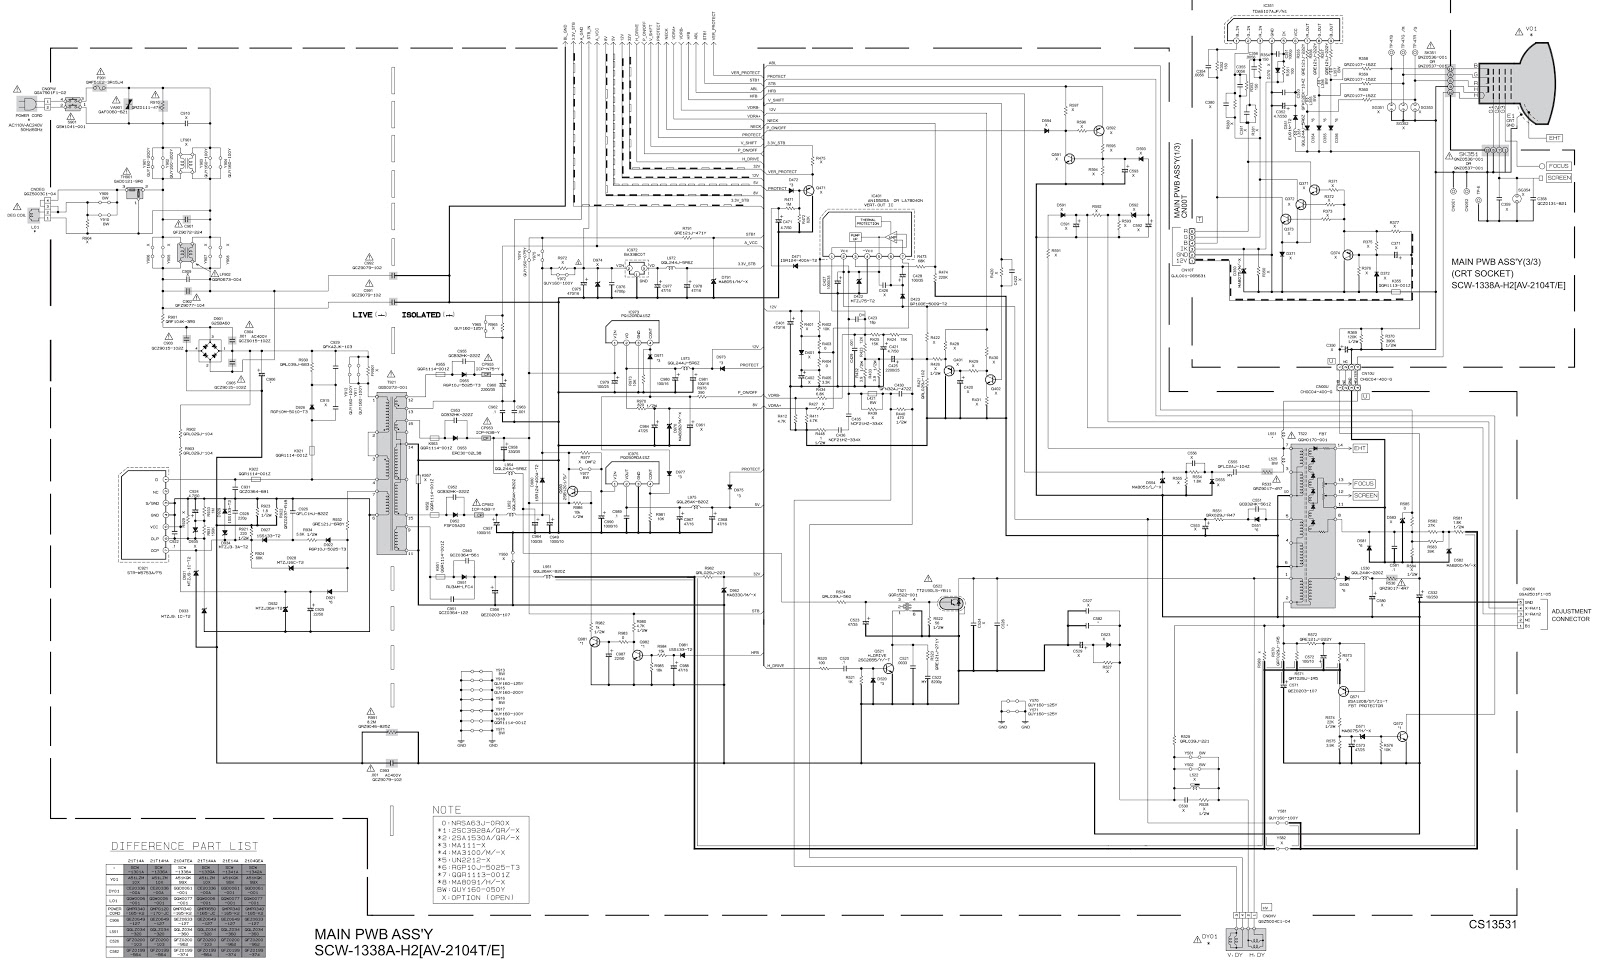 jvc tv diagram everything about wiring diagram u2022 rh calsignsolutions com jvc tv circuit diagram circuit diagram for a television [ 1600 x 970 Pixel ]